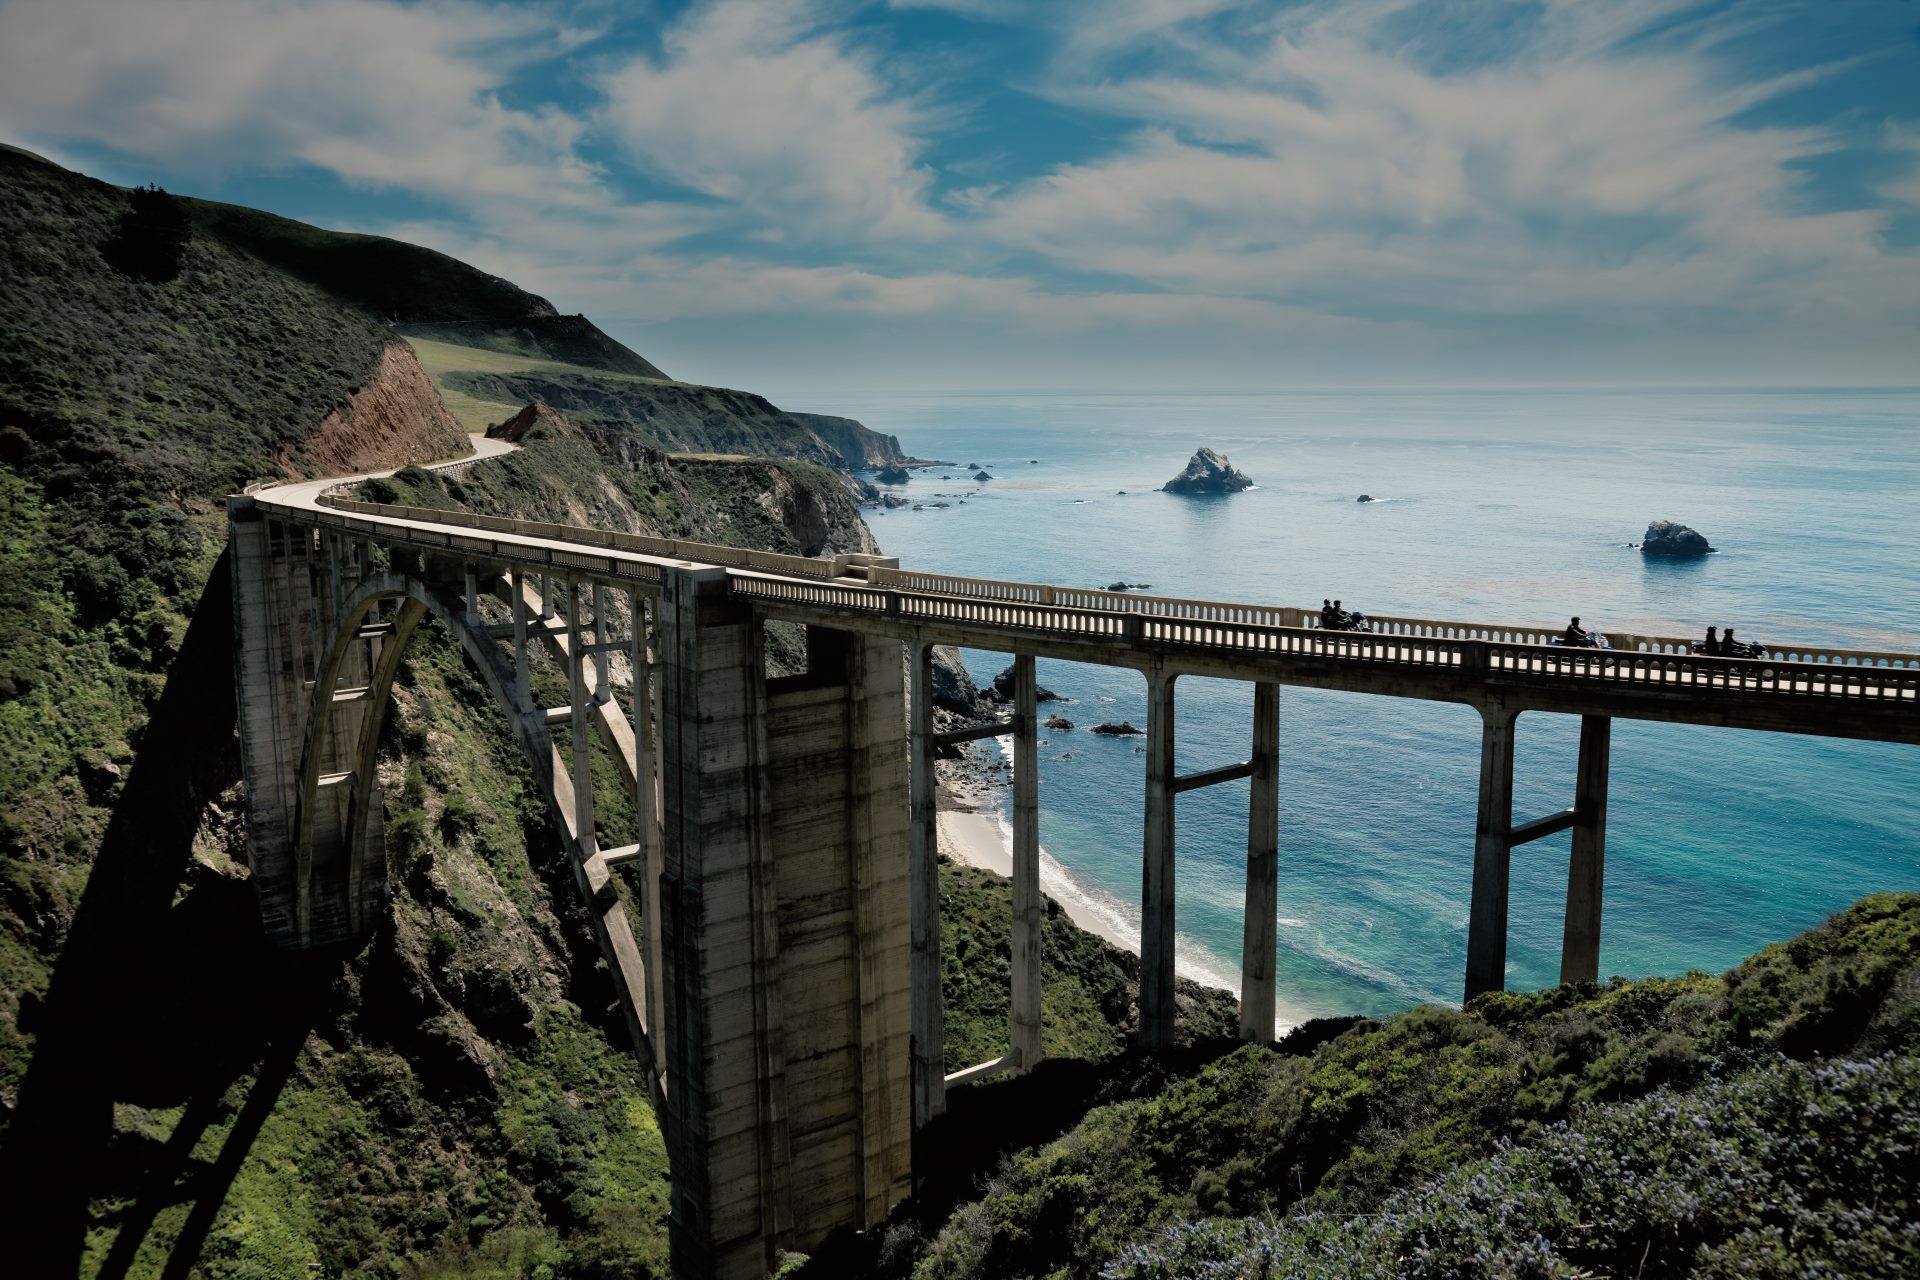 Harley Davidson Motorcycle Ride on California Highway 1